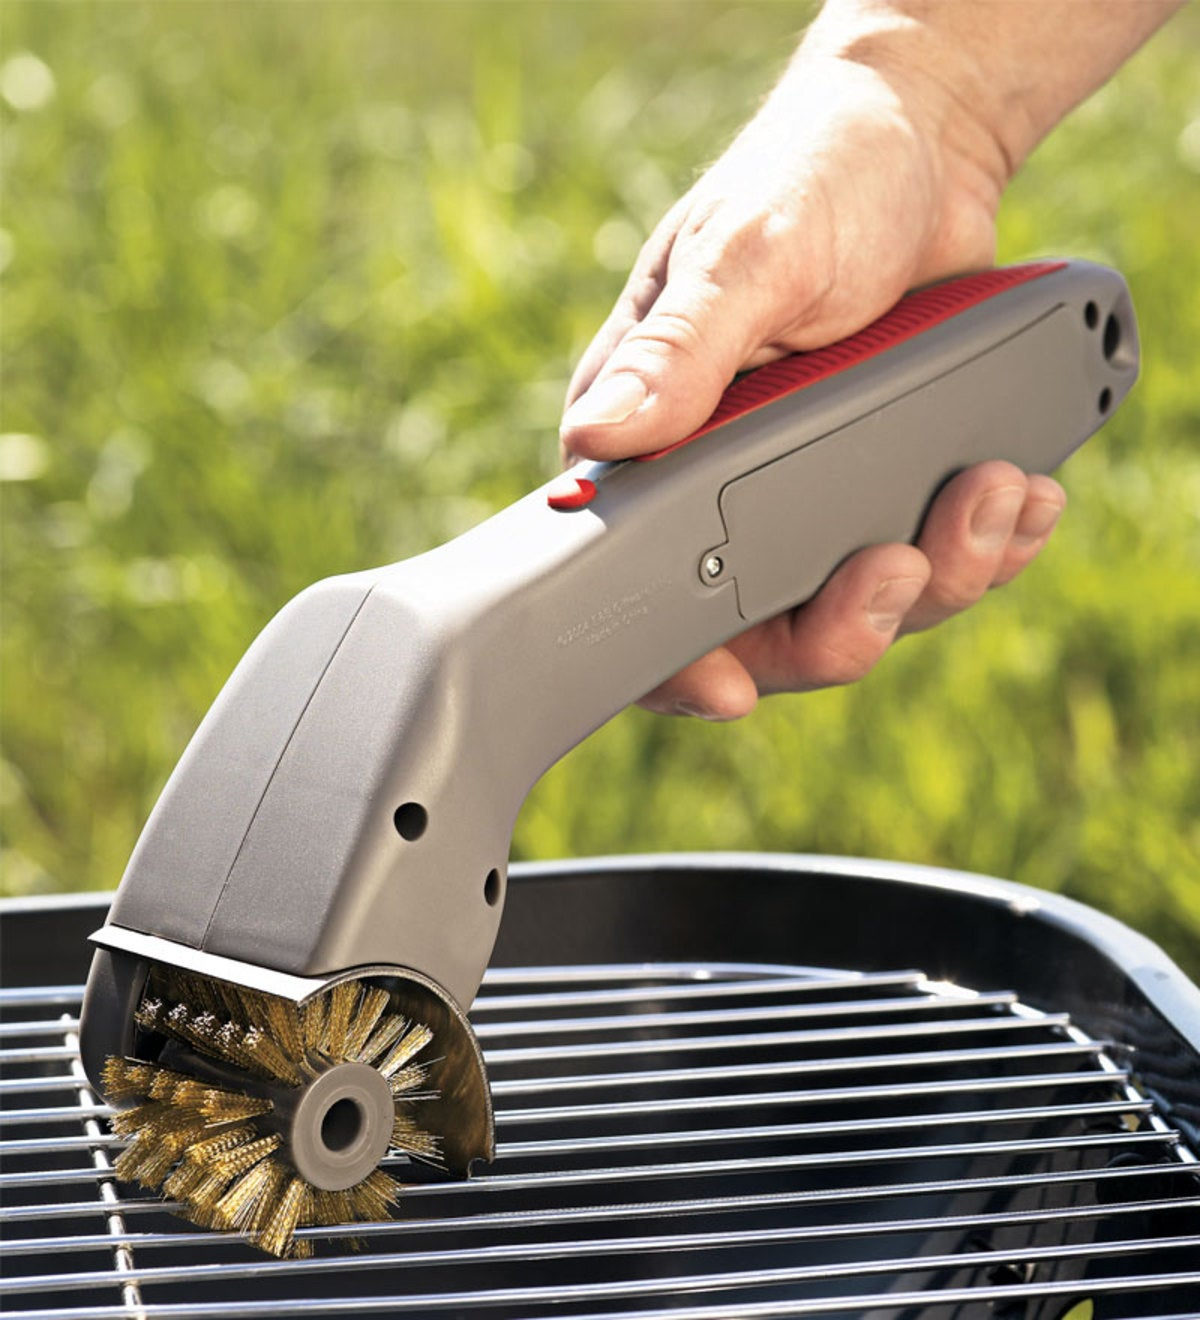 Electronic Grill Brush with Rotating Brass Bristles